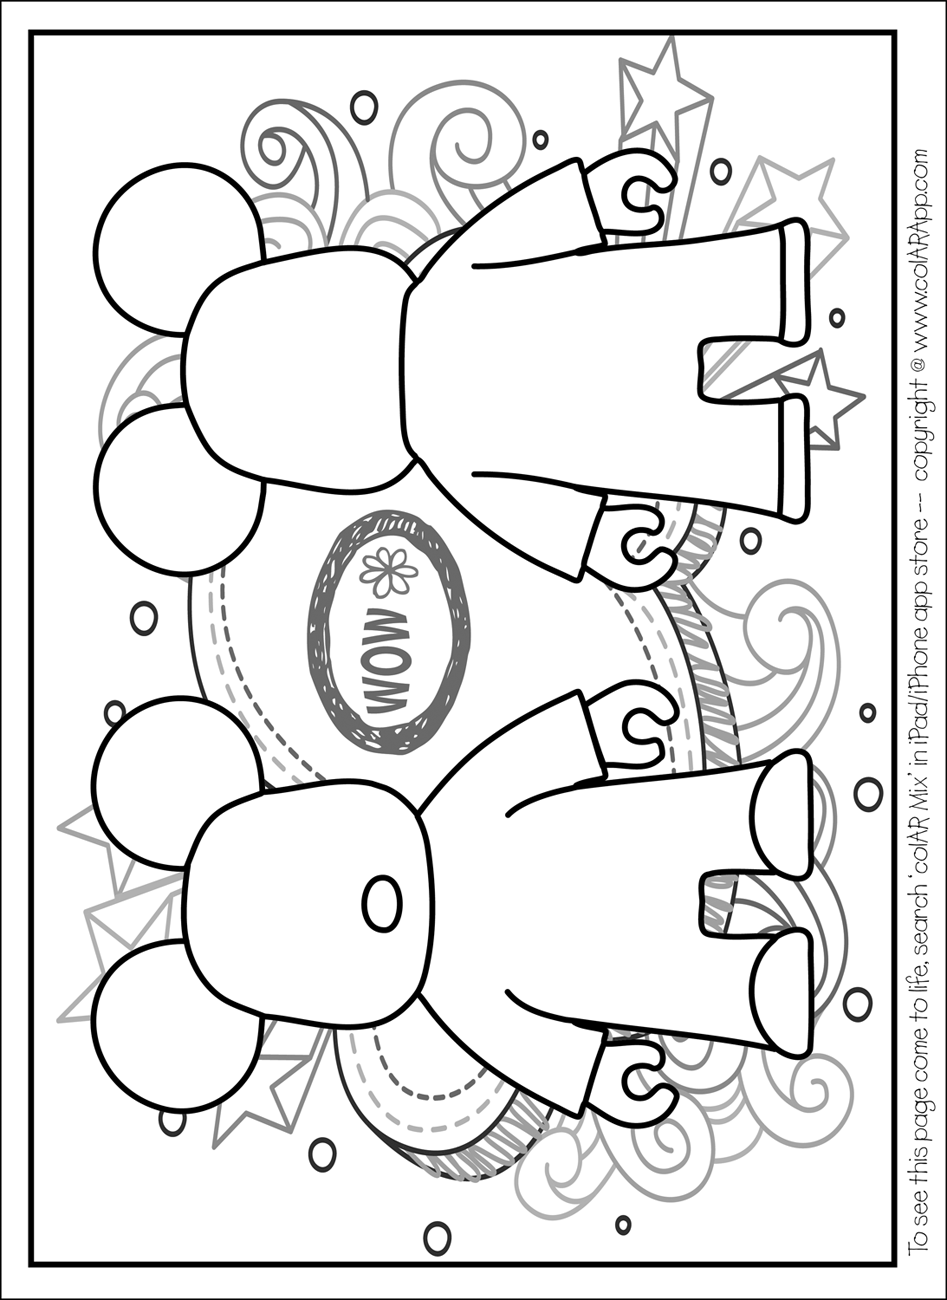 colar mix coloring pages - photo#6